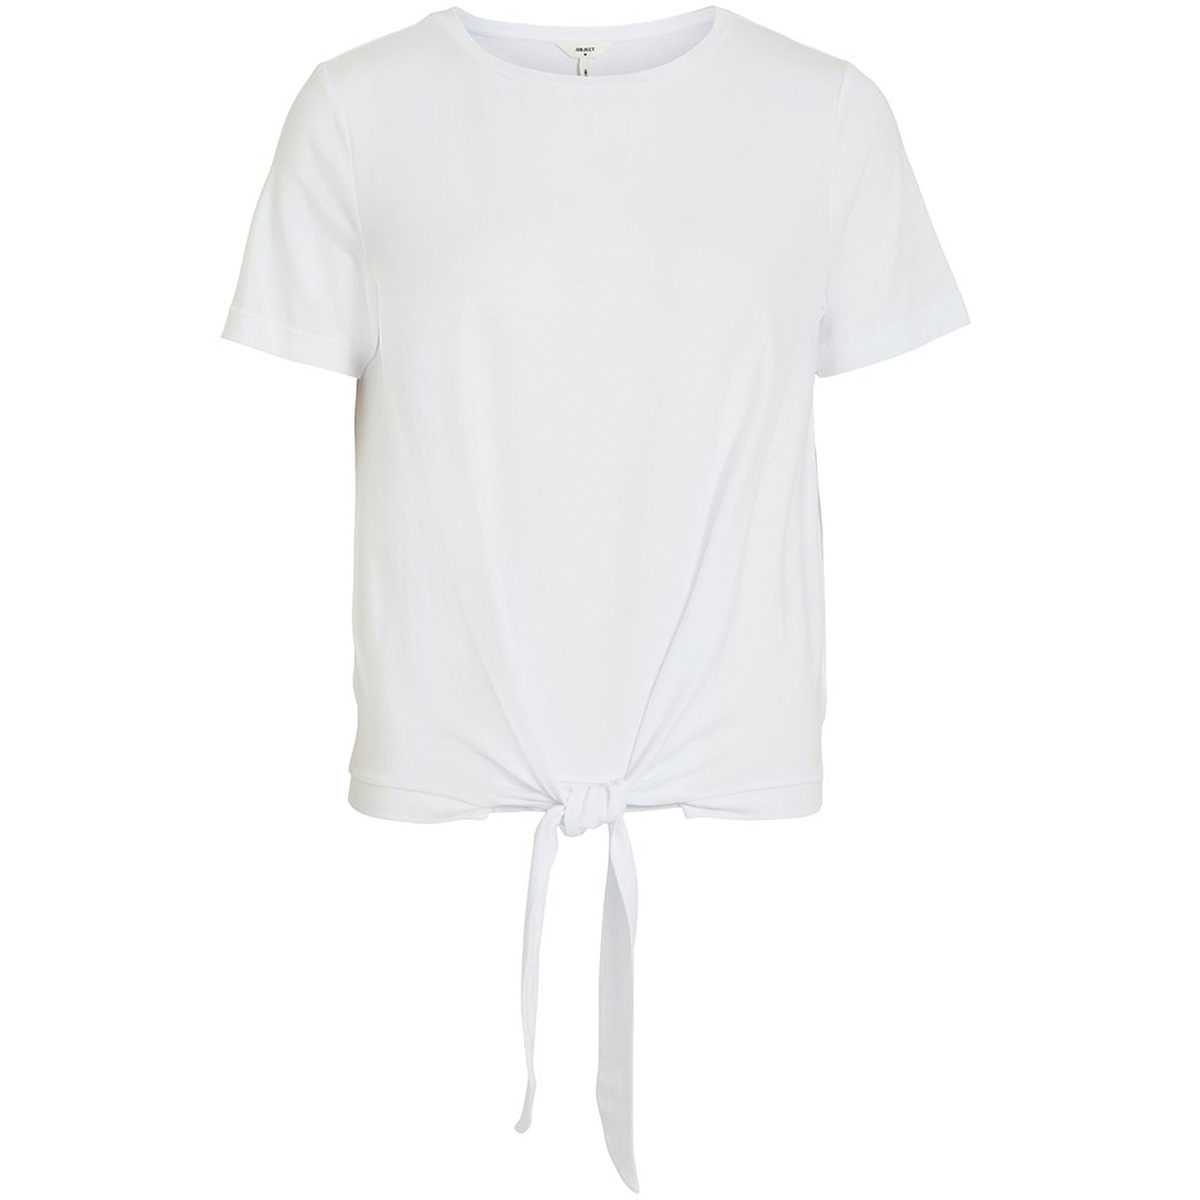 objstephanie maxwell s/s top noos 23029269 object t-shirt white